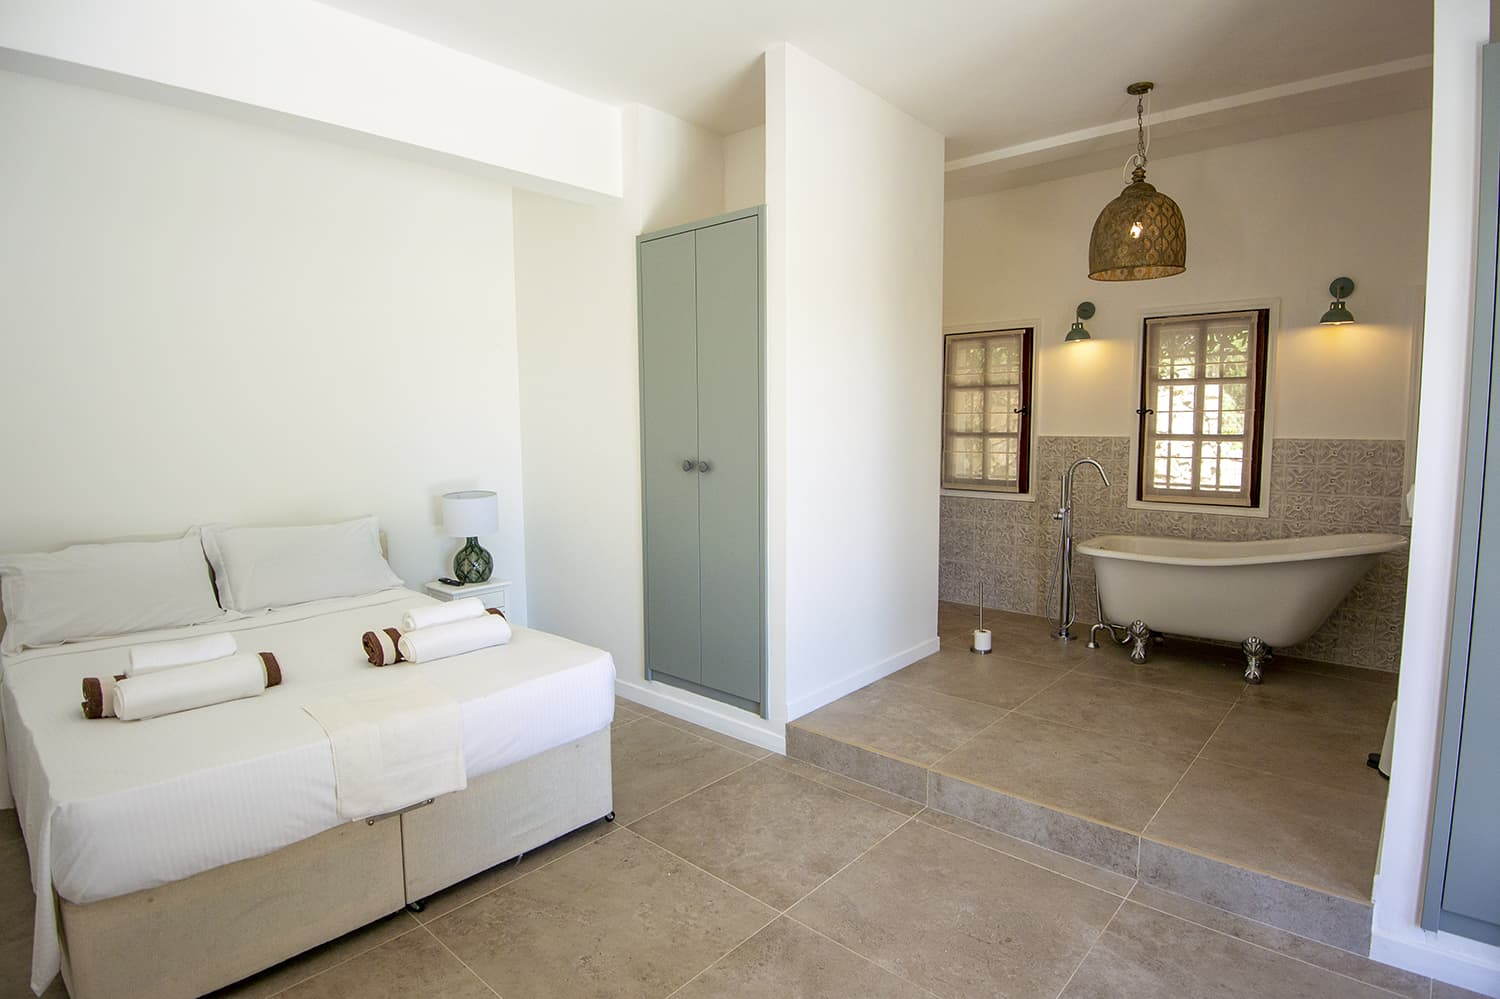 Bedroom and bathroom in Mougins, Provence-Alpes-Côte d'Azur